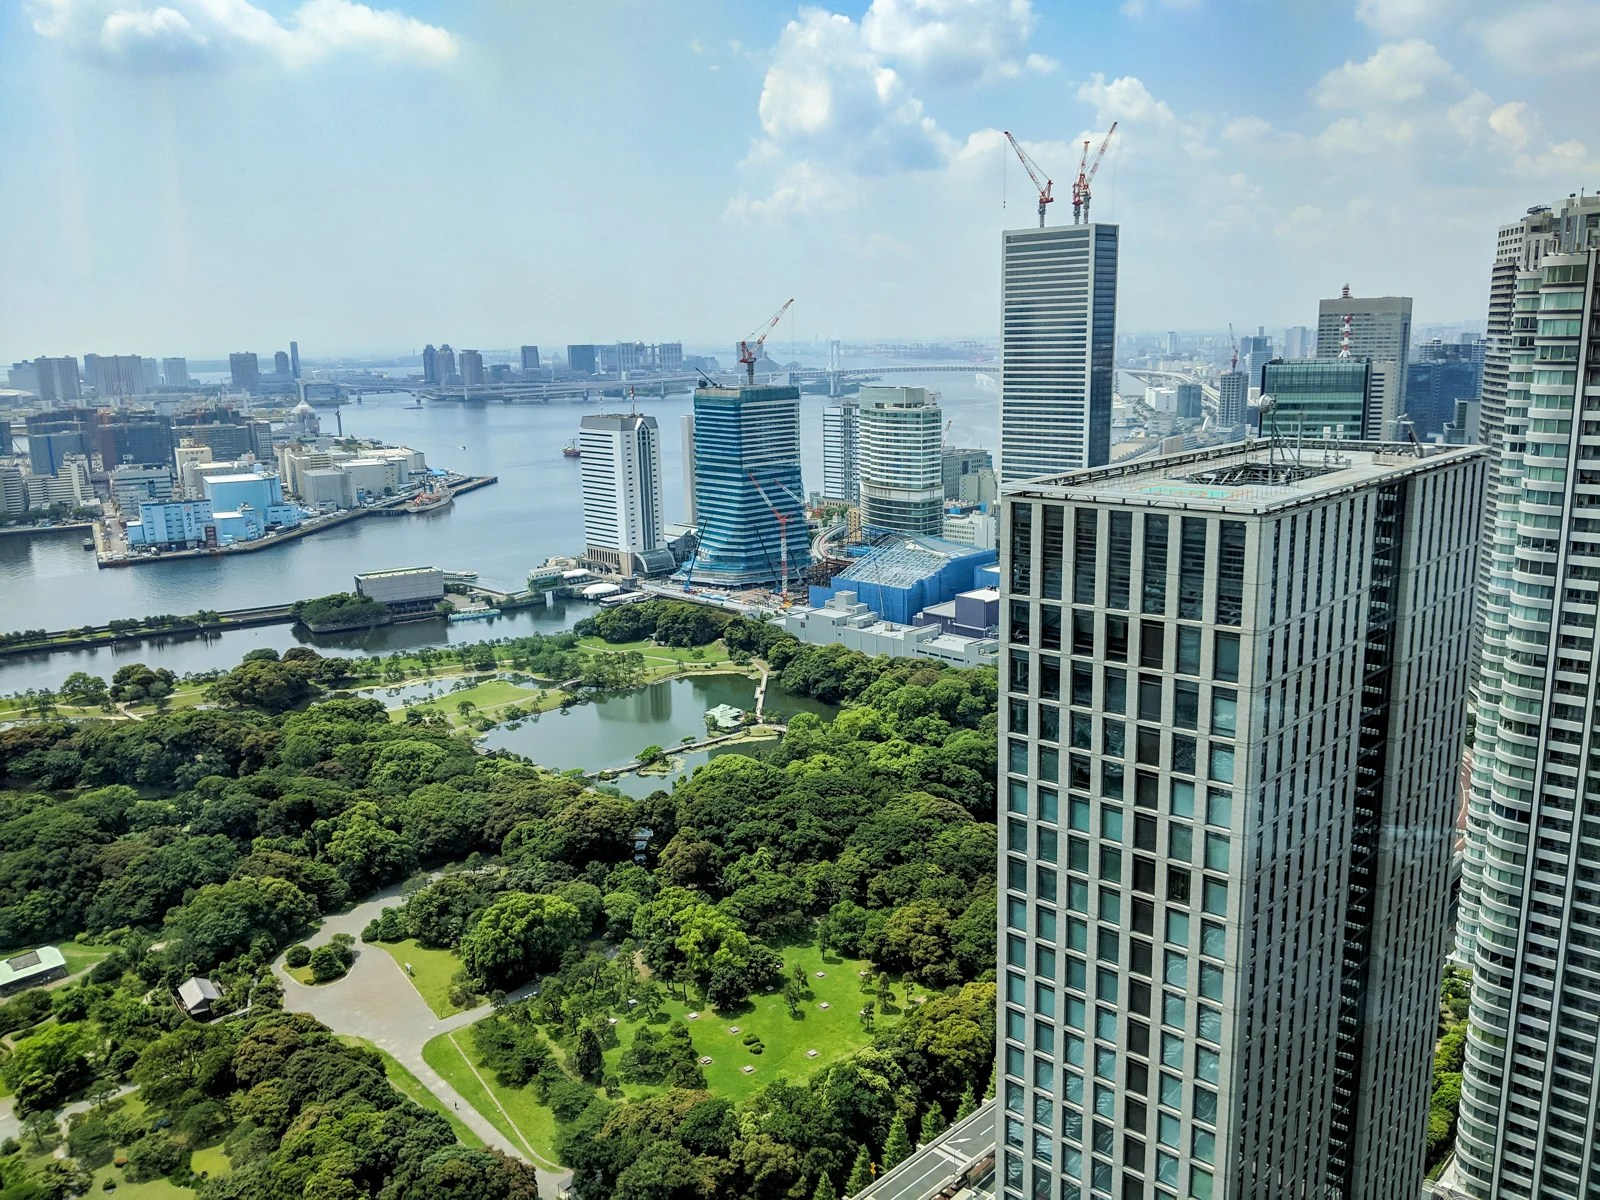 Why Did I Have to Leave? A Review of the Conrad Tokyo